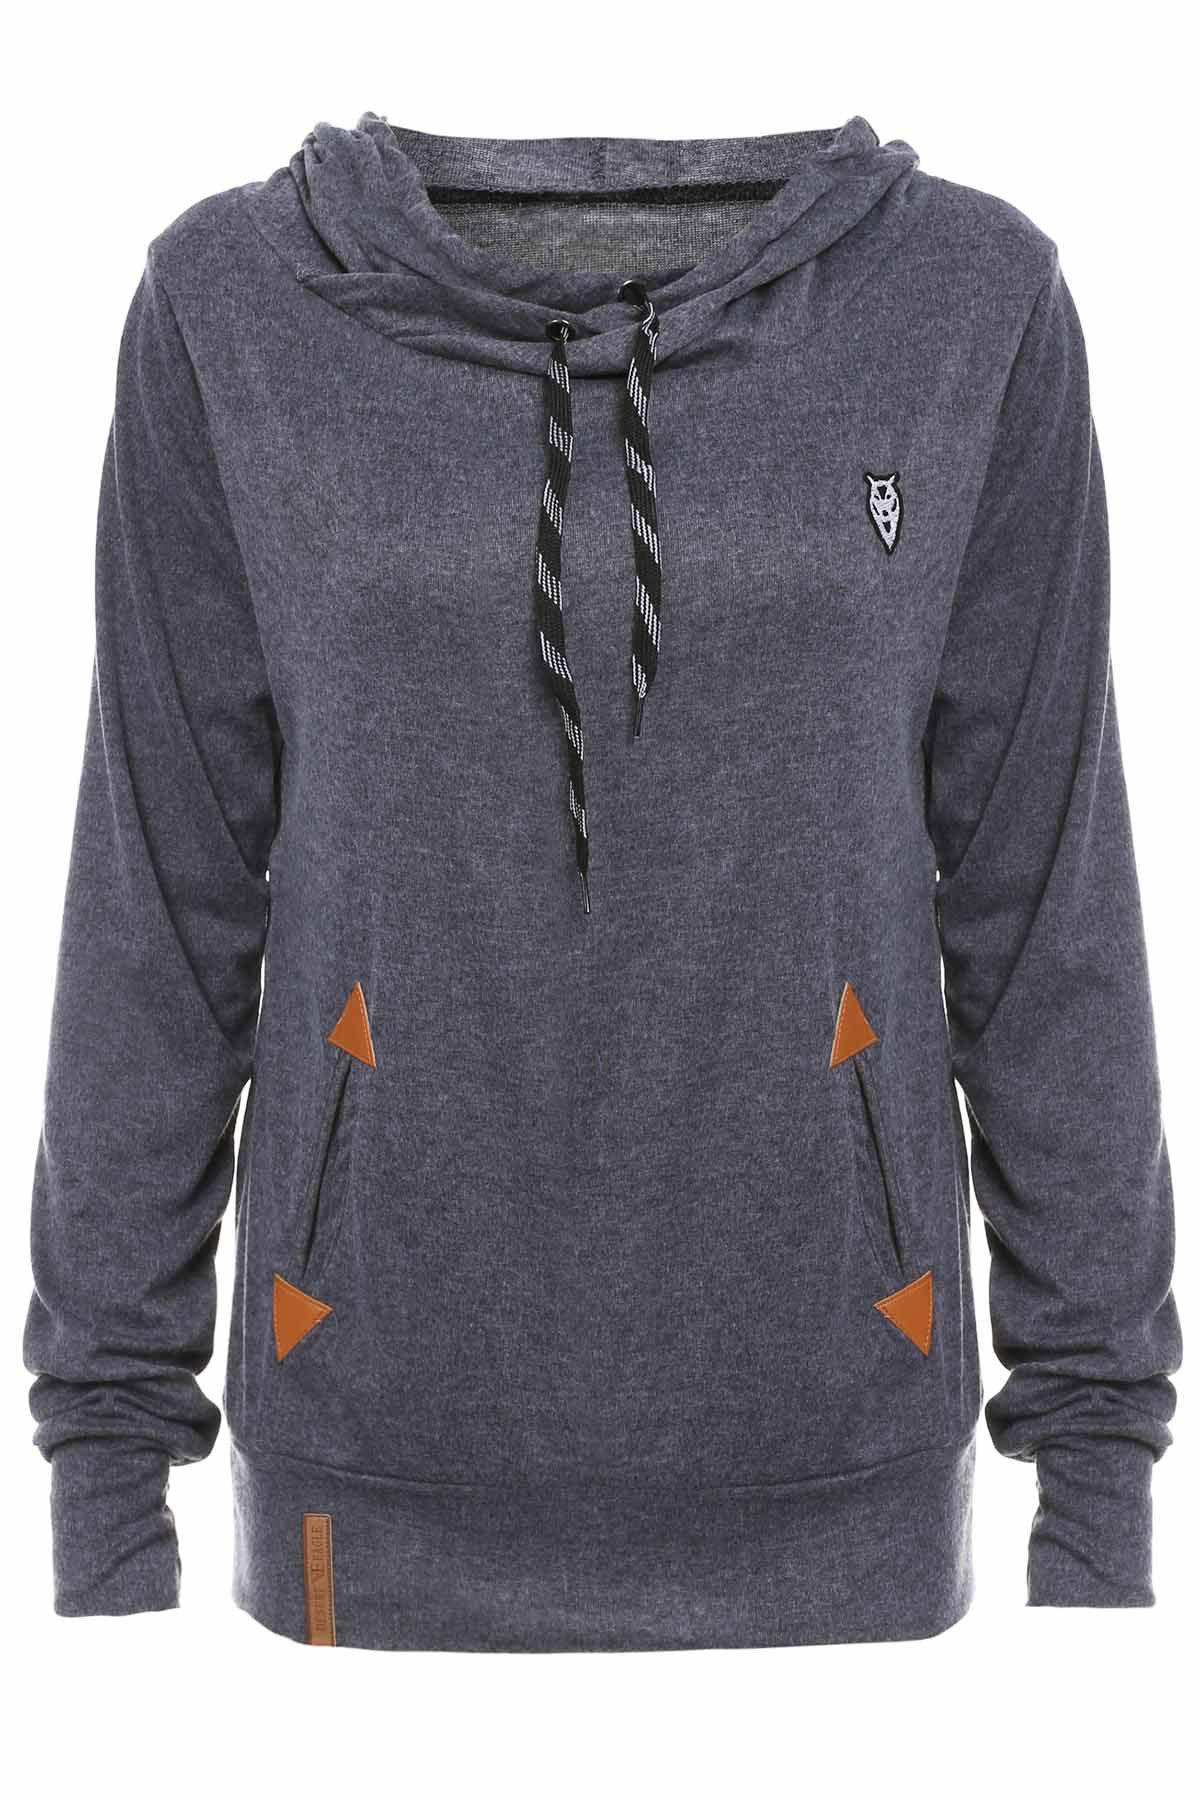 Stylish Hooded Long Sleeve Embroidered Pocket Design Women's Hoodie - DEEP GRAY S